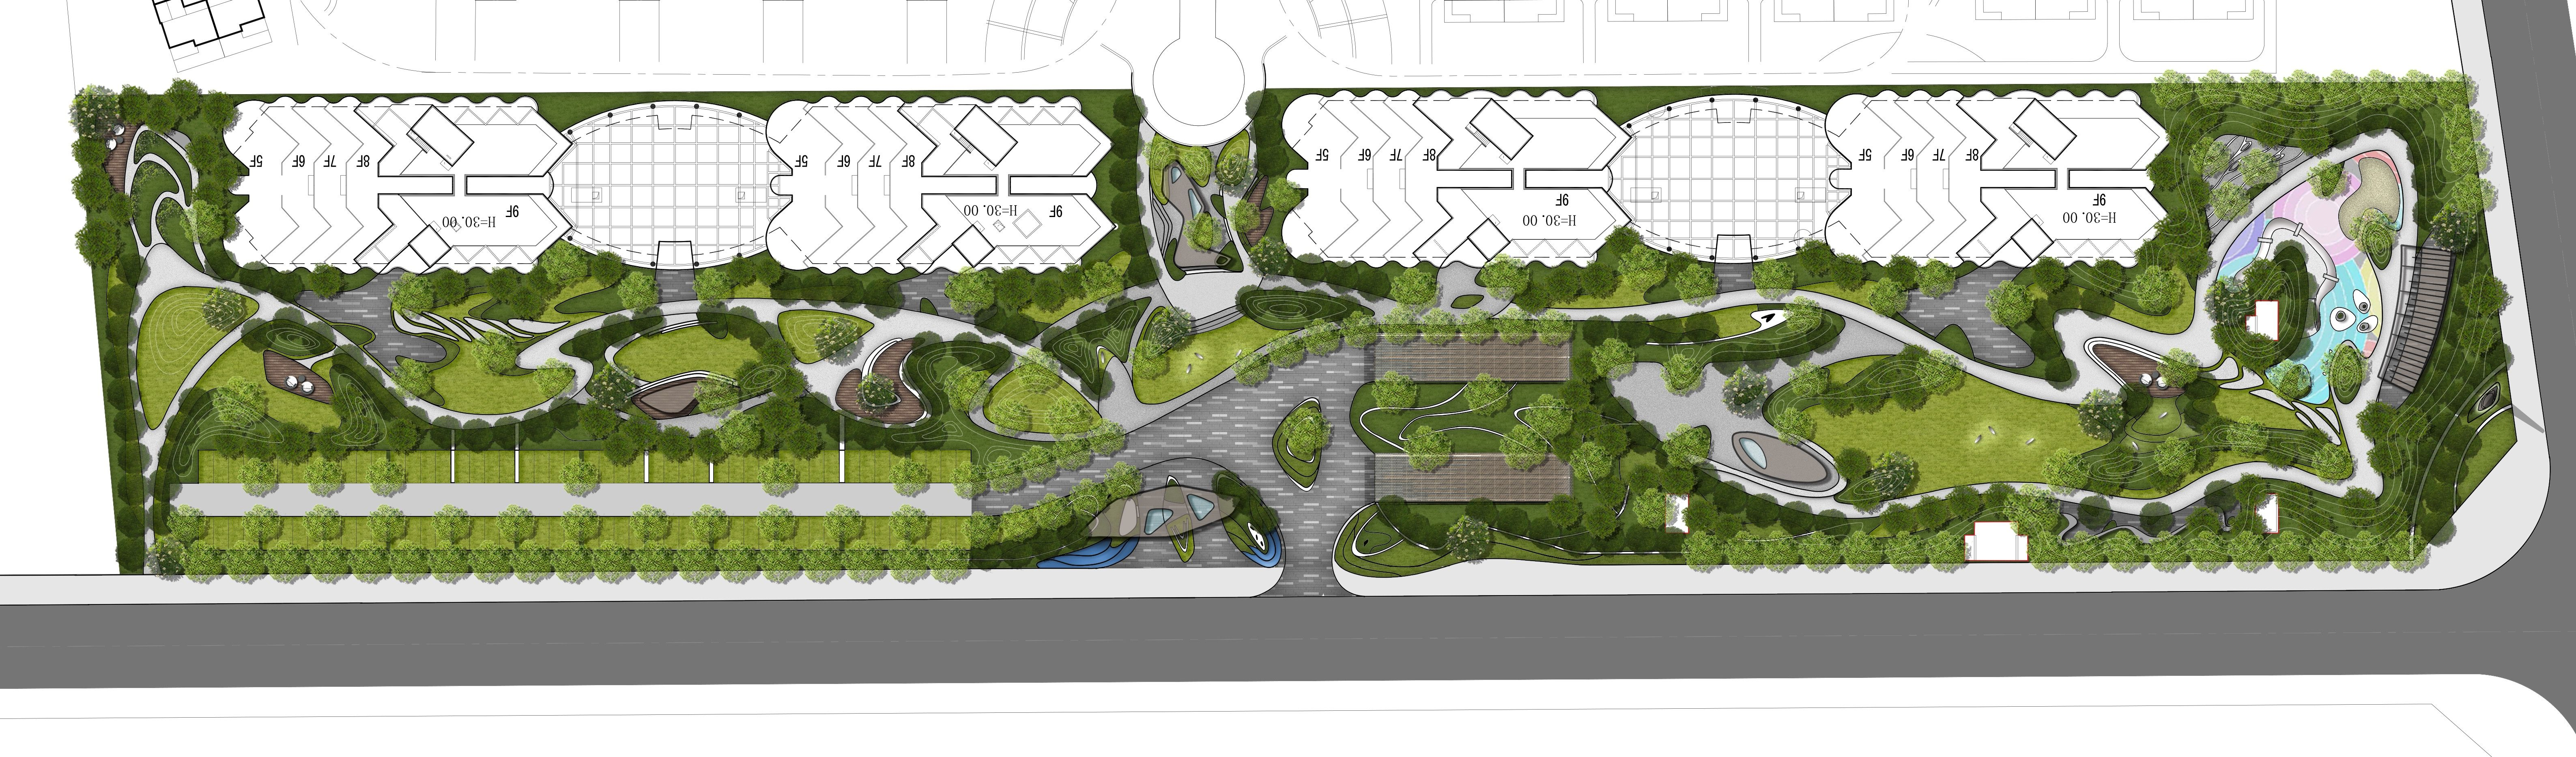 Fluidity Of Form And Functions Landscape Design Cintiq Organic Forms Design Art M Oplado Landscape Design Services Landscape Design Landscape